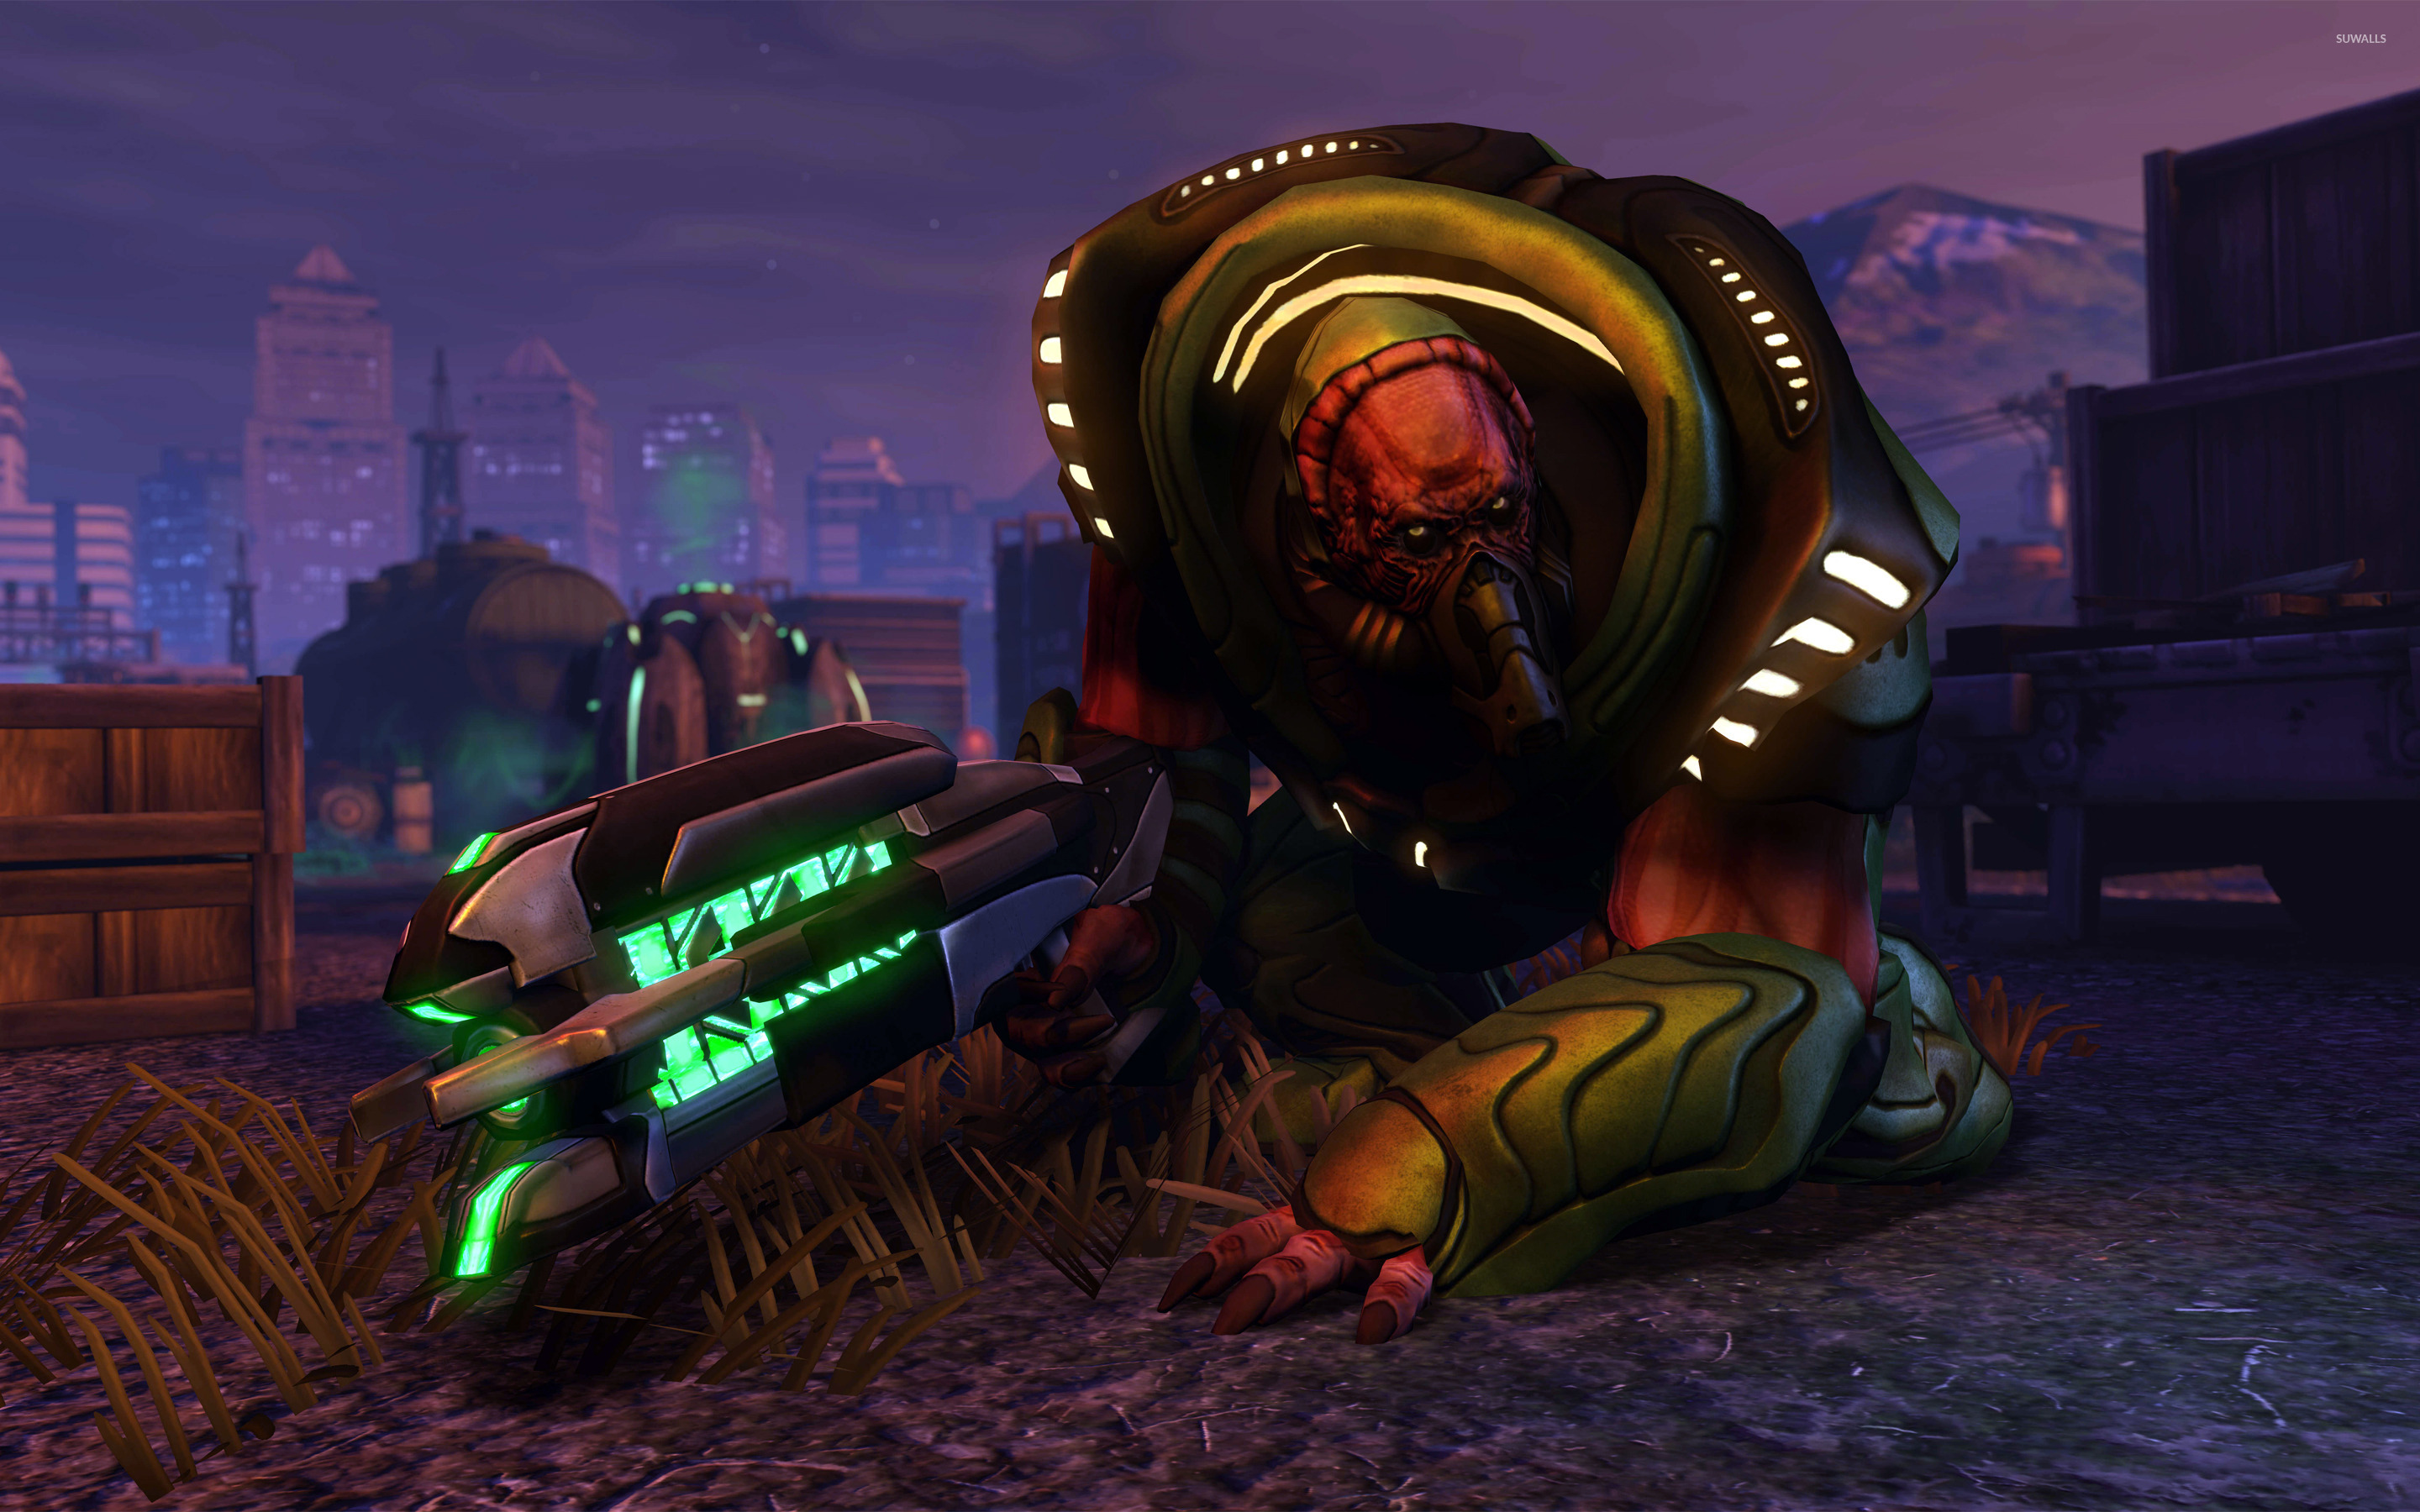 xcom: enemy unknown [5] wallpaper - game wallpapers - #23079